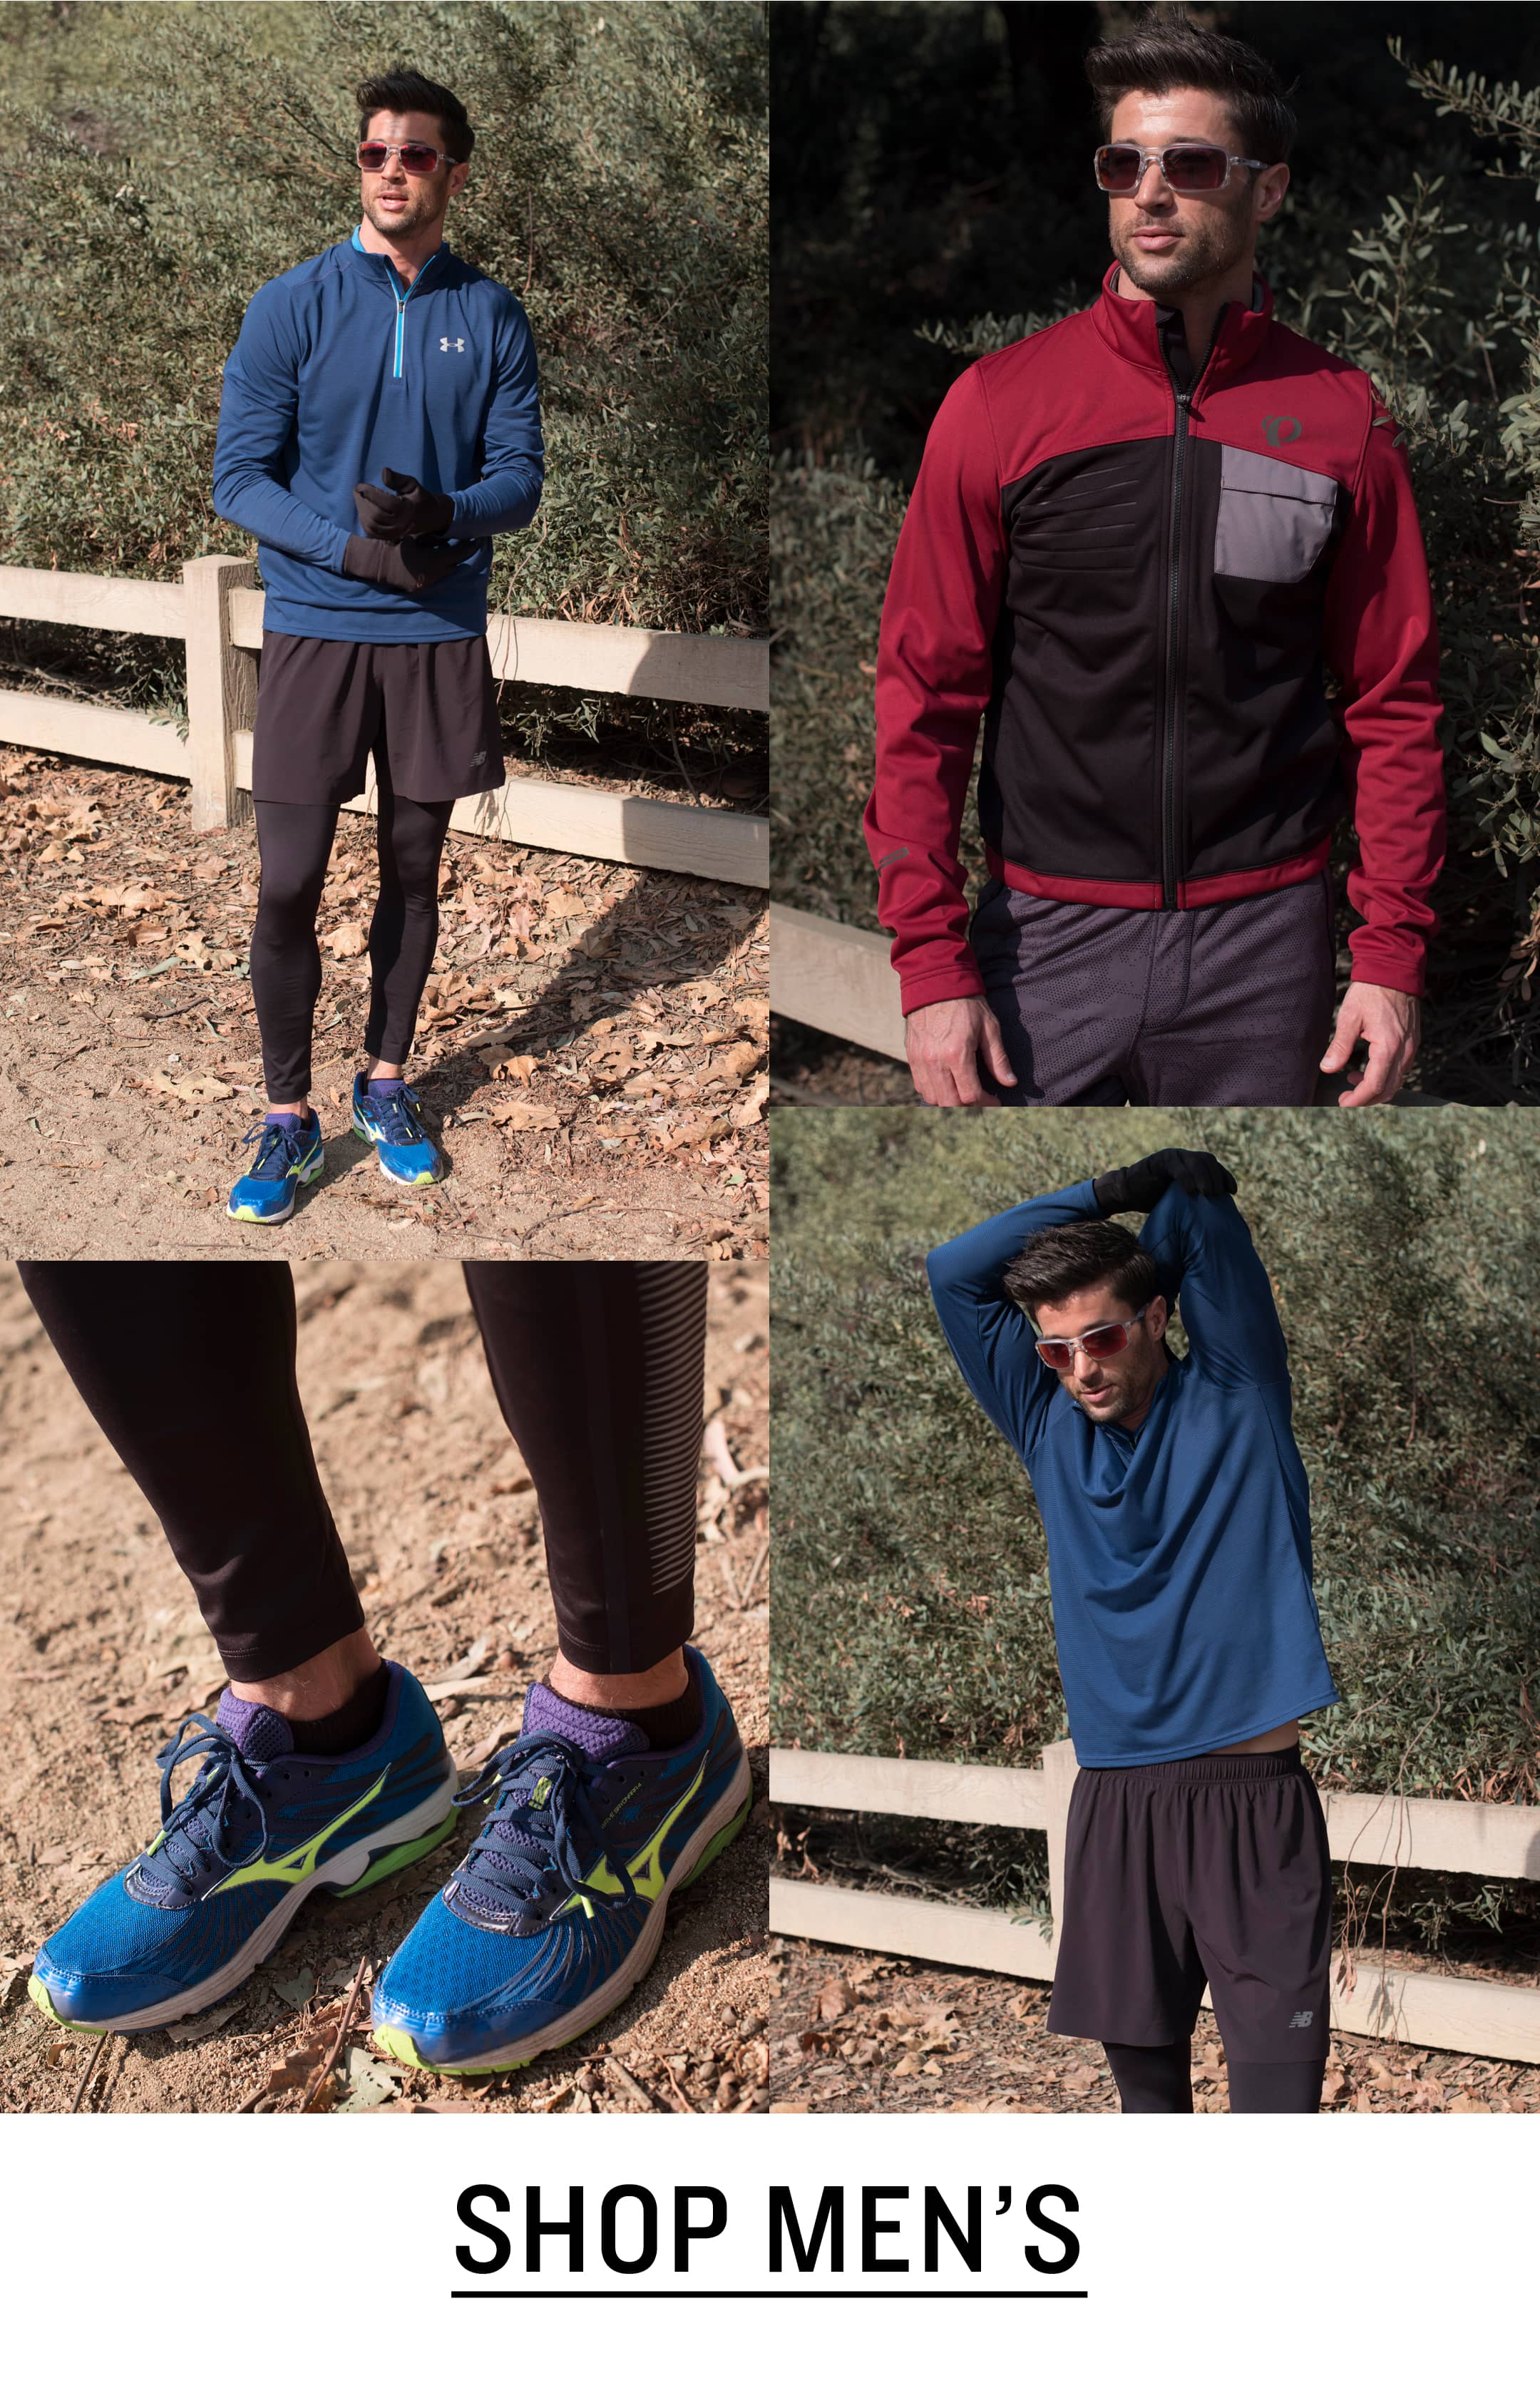 Men's Running Clothing and Shoes